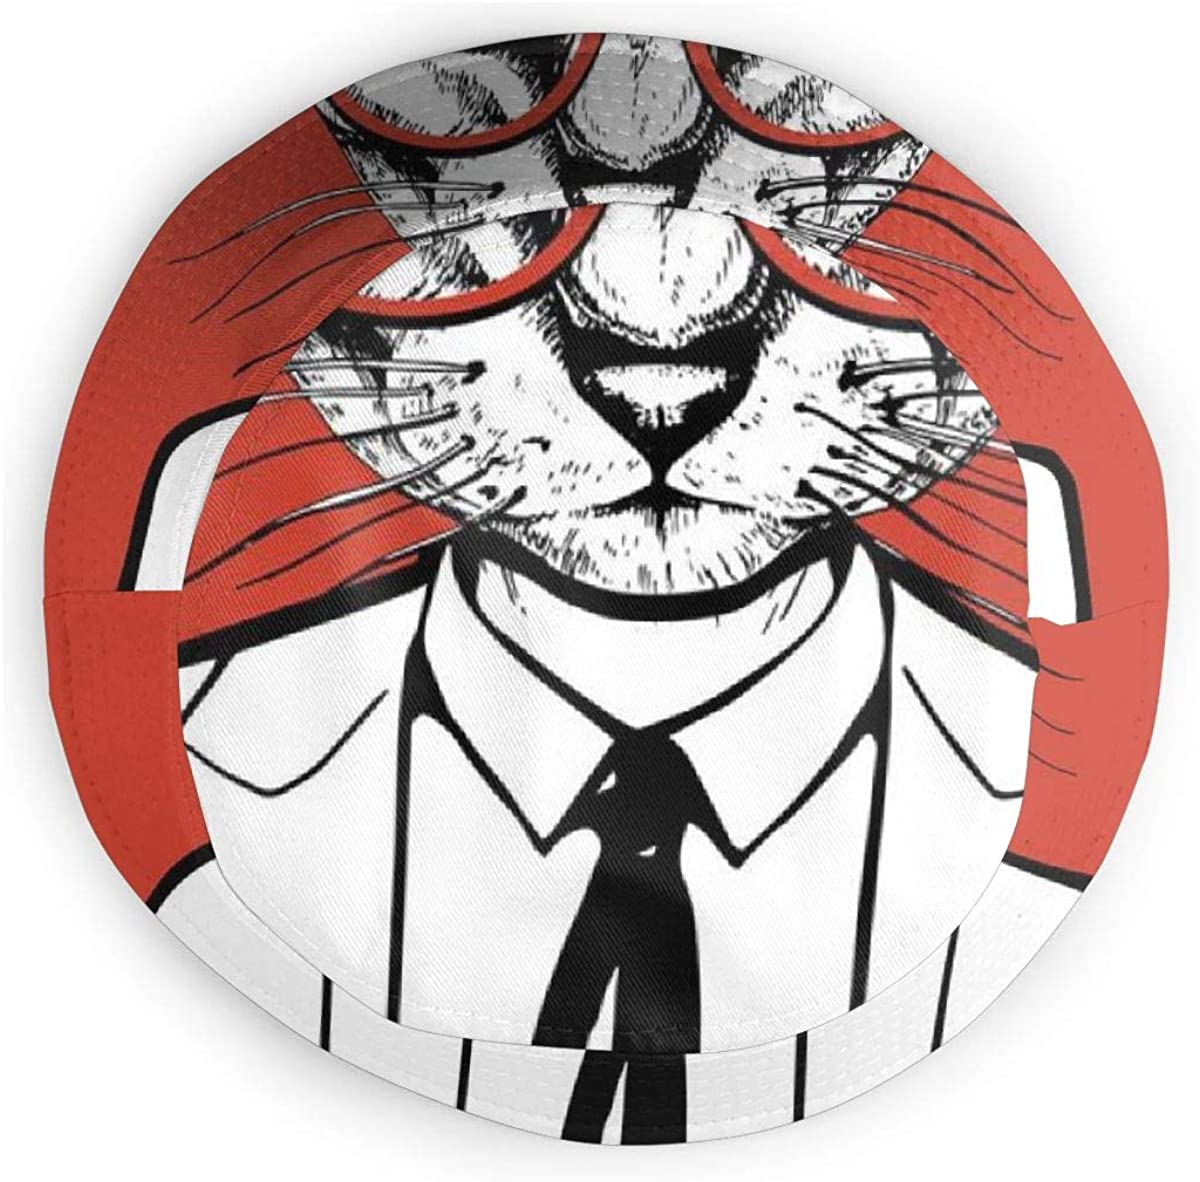 GULTMEE Unisex Fisherman Cap,Funny Vintage Sketch of Businessman Cat with Glasses and Suit,Travel Beach Hat